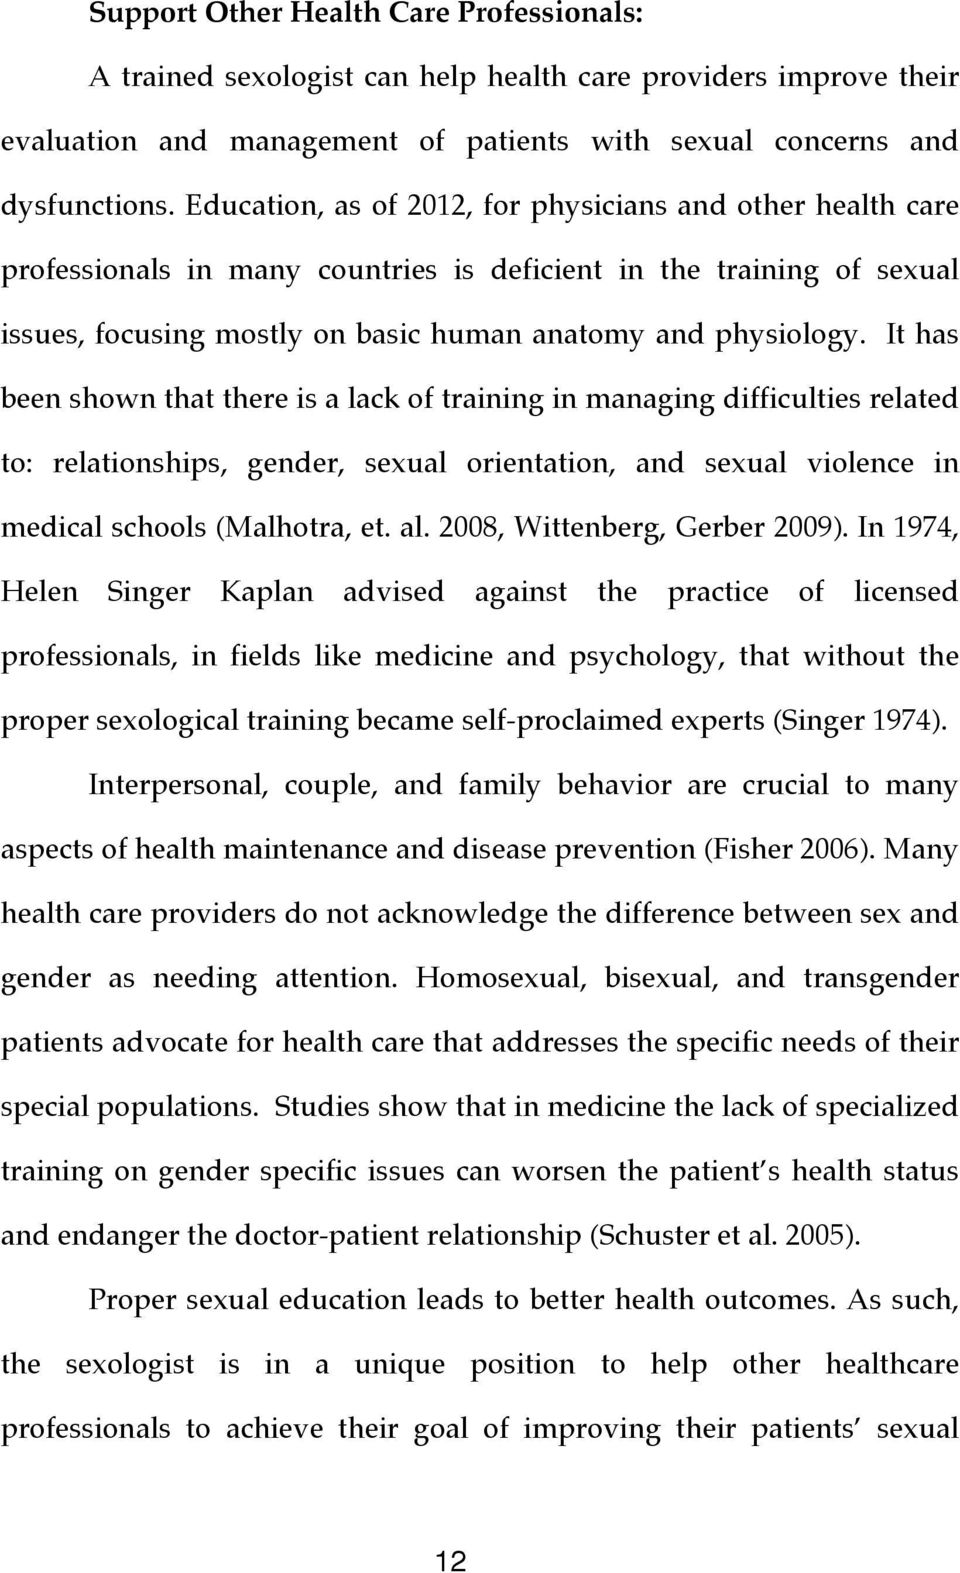 It has been shown that there is a lack of training in managing difficulties related to: relationships, gender, sexual orientation, and sexual violence in medical schools (Malhotra, et. al.